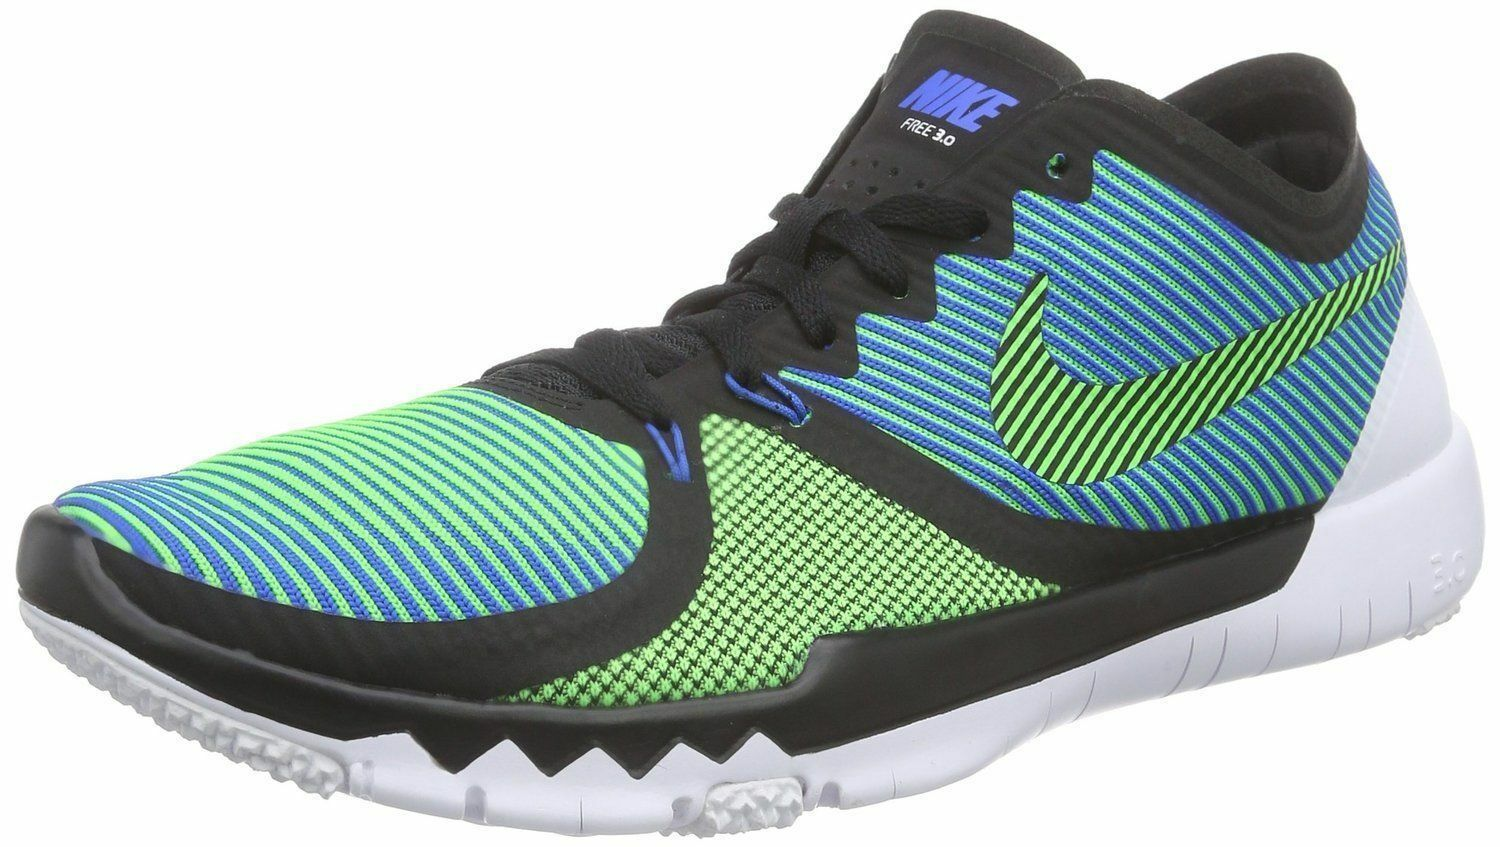 NIKE FREE TRAINER 3.0 V4 TRAINING SNEAKERS MEN SHOES 49361-034 SIZE 10 NEW